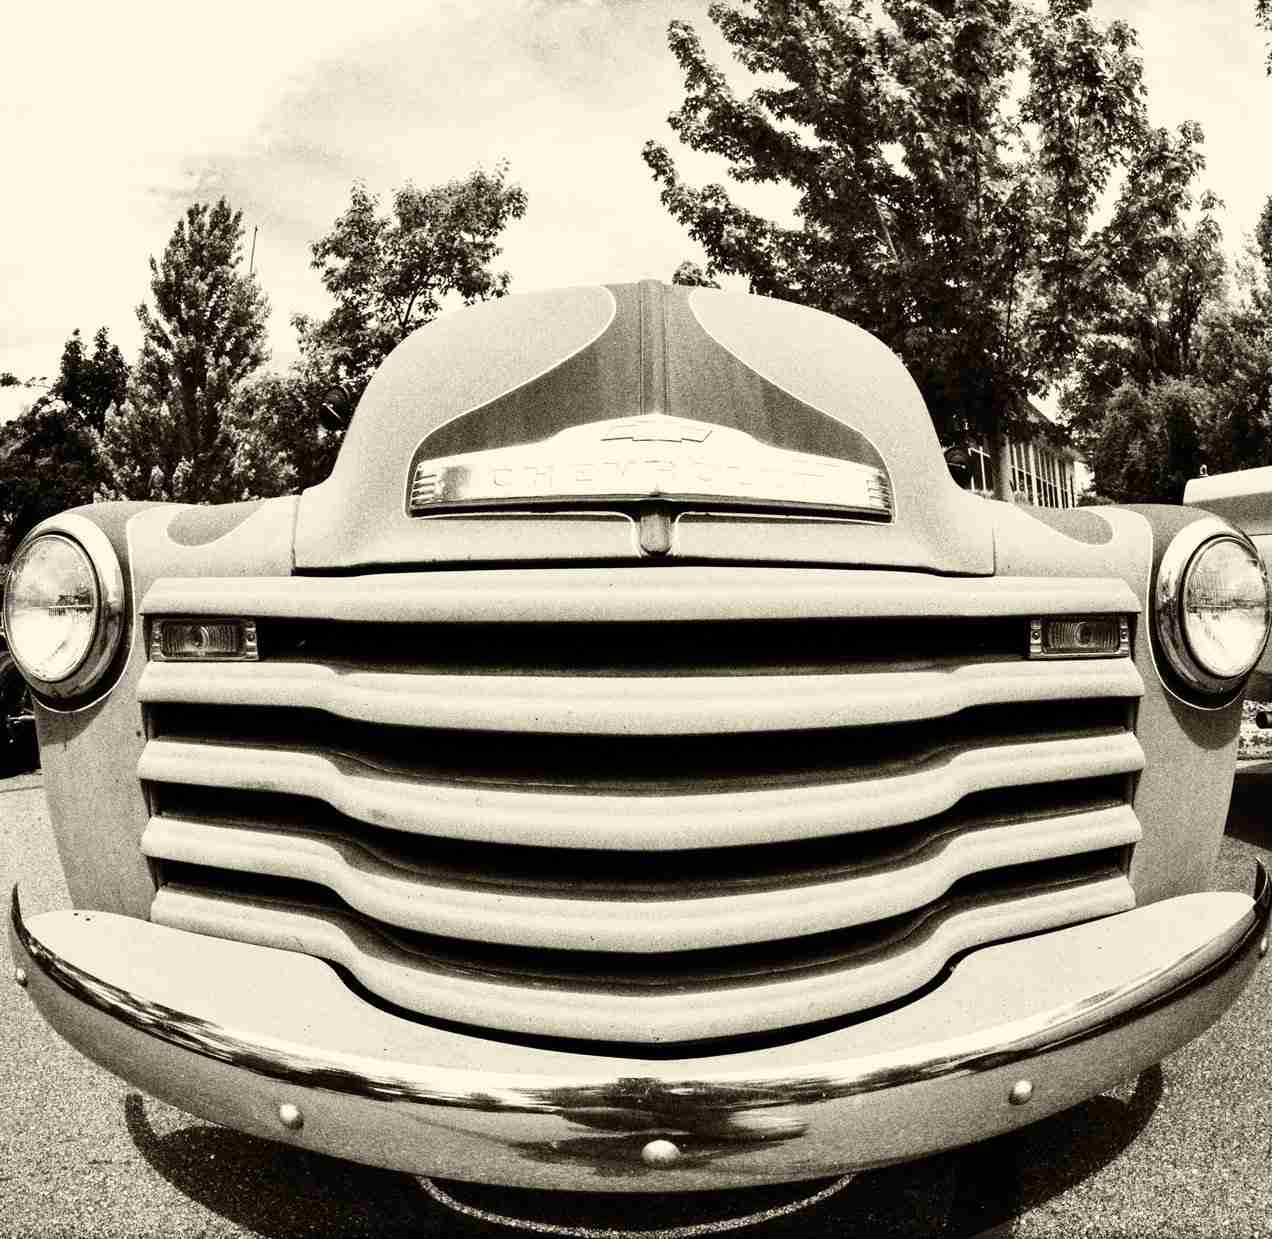 Sepia Print of Classic 1940's Chevrolet